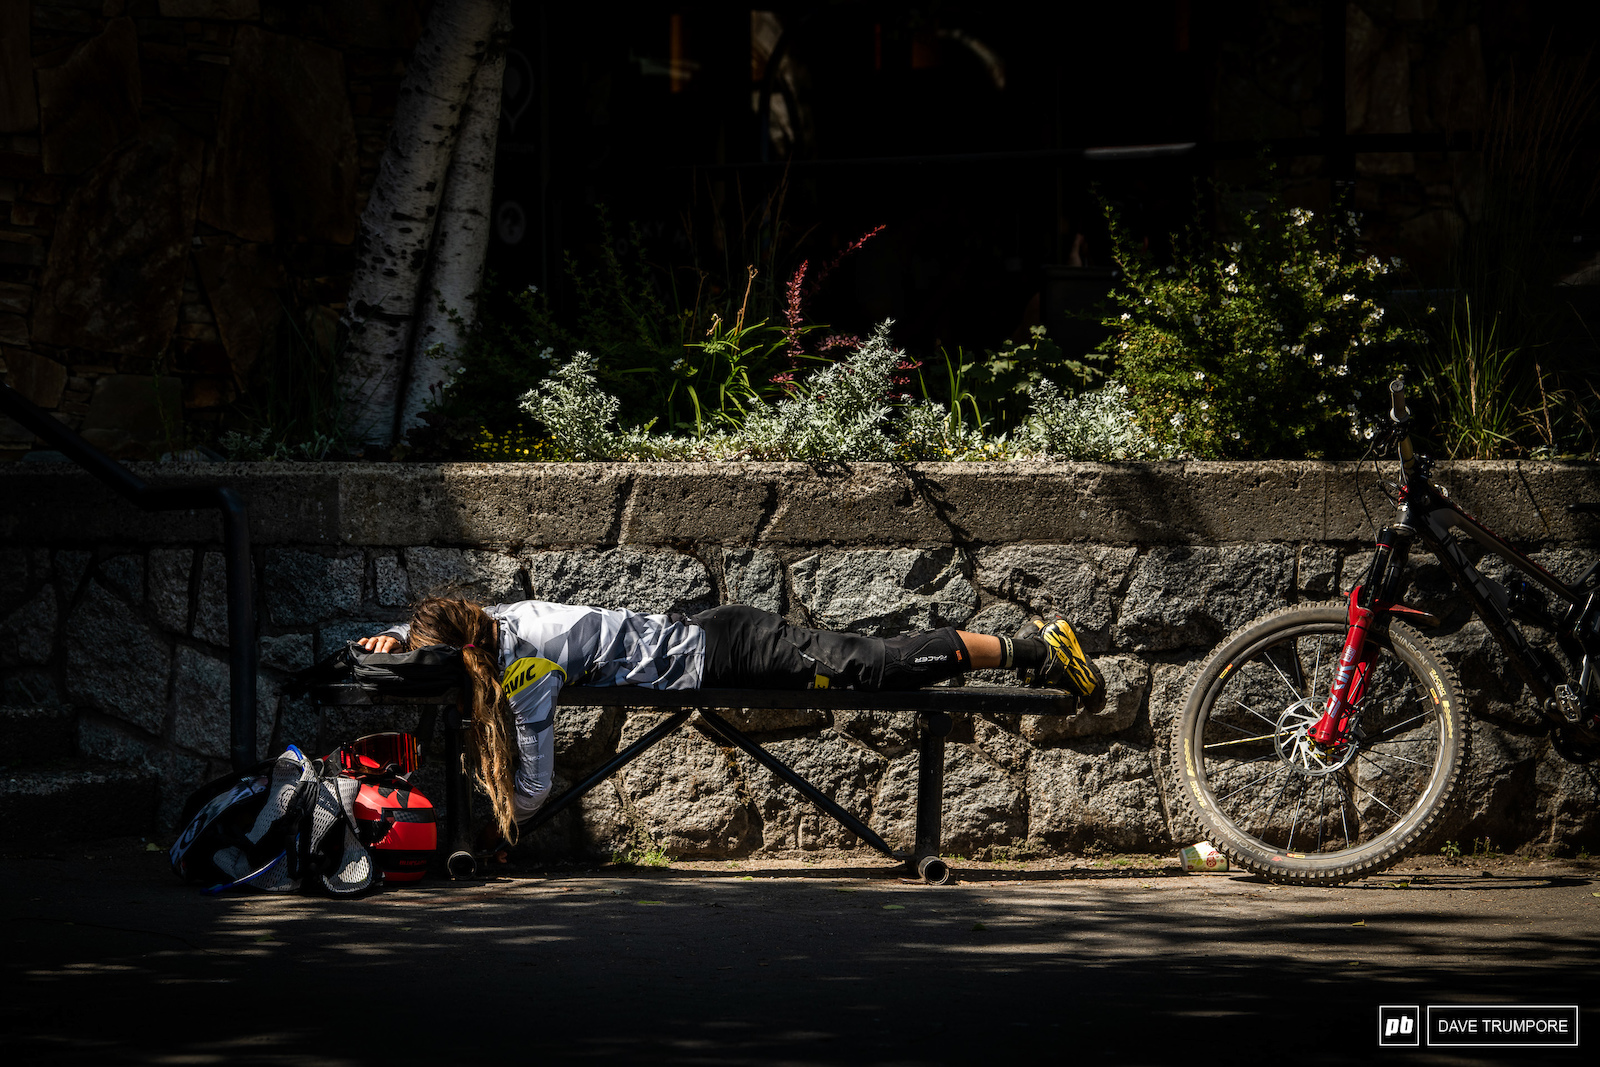 Isabeau Courdurier has the Whistler lifestyle locked down. Ride rough and rowdy trails all day in the heat and then try to sleep wherever you can